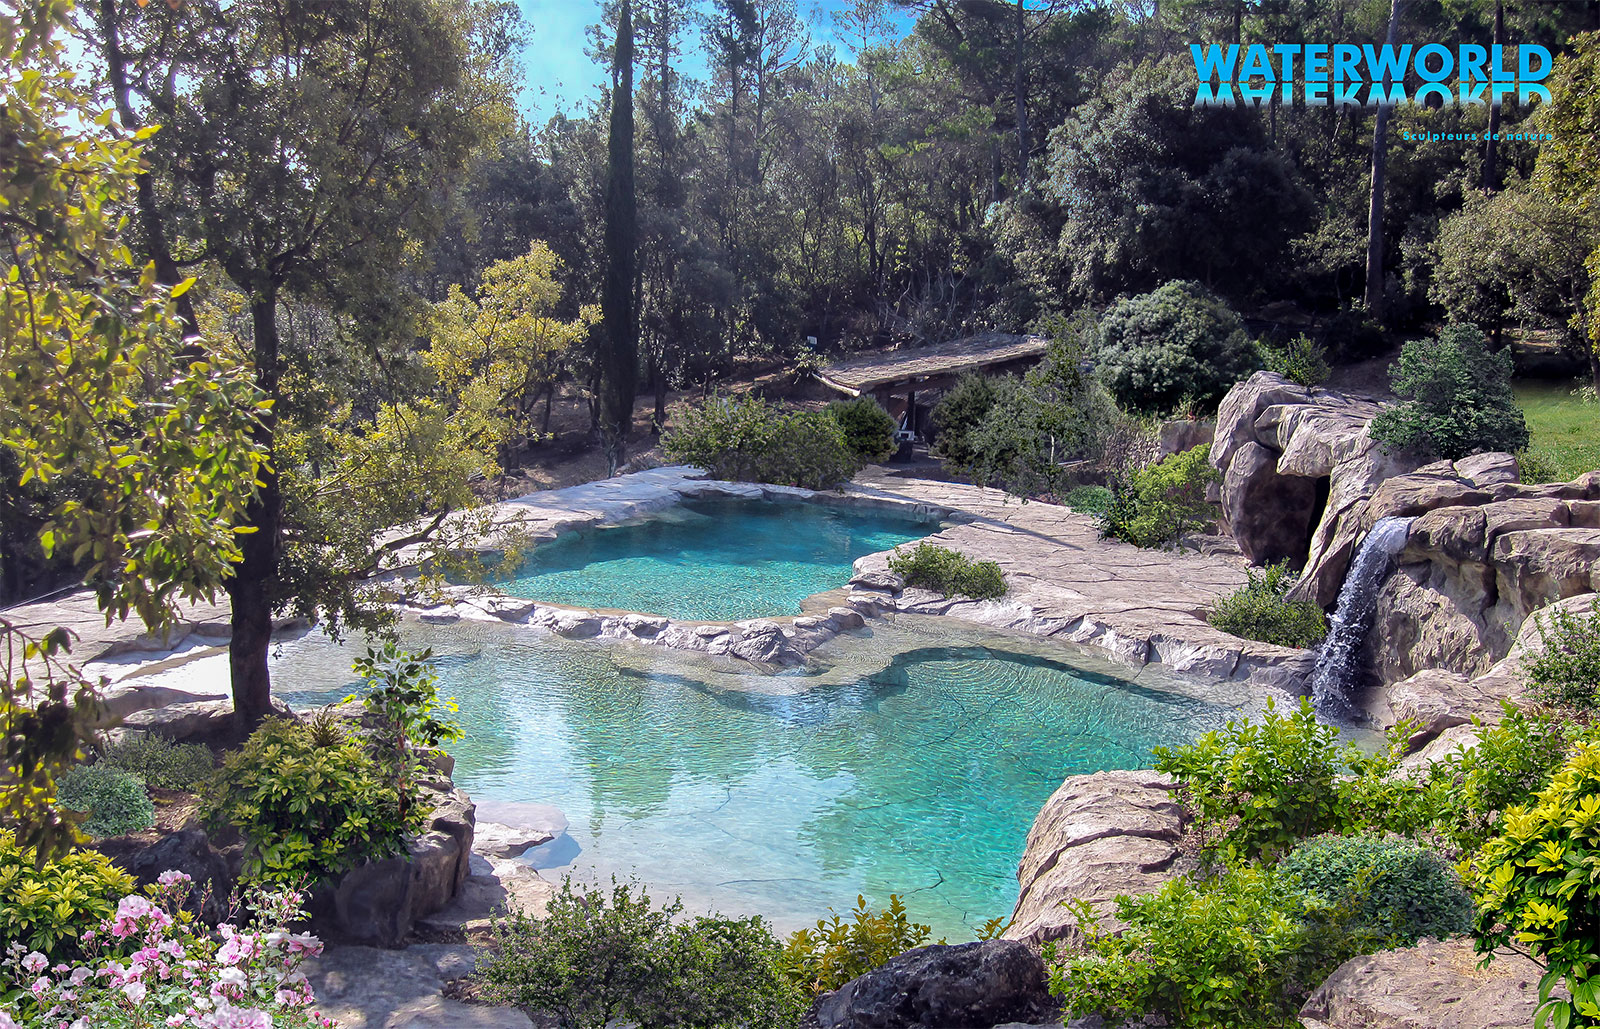 Piscines paysag es d 39 exception bassins cascades for Piscine naturelle a debordement